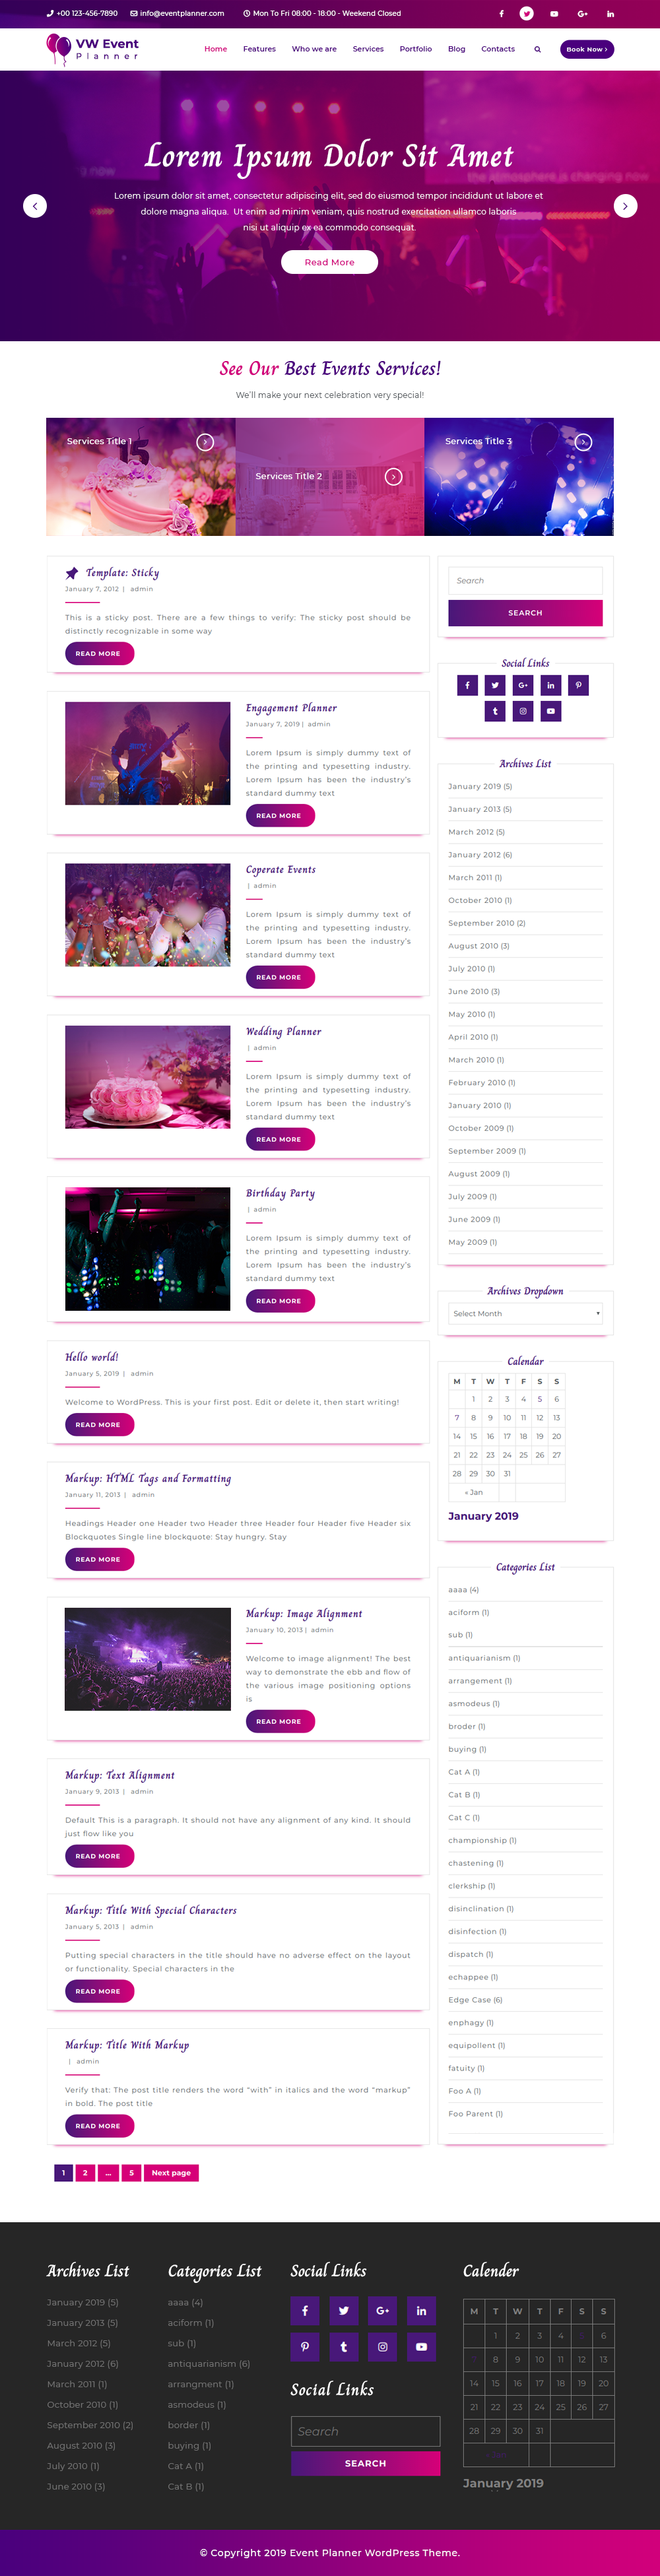 Free Event Planner WordPress Theme